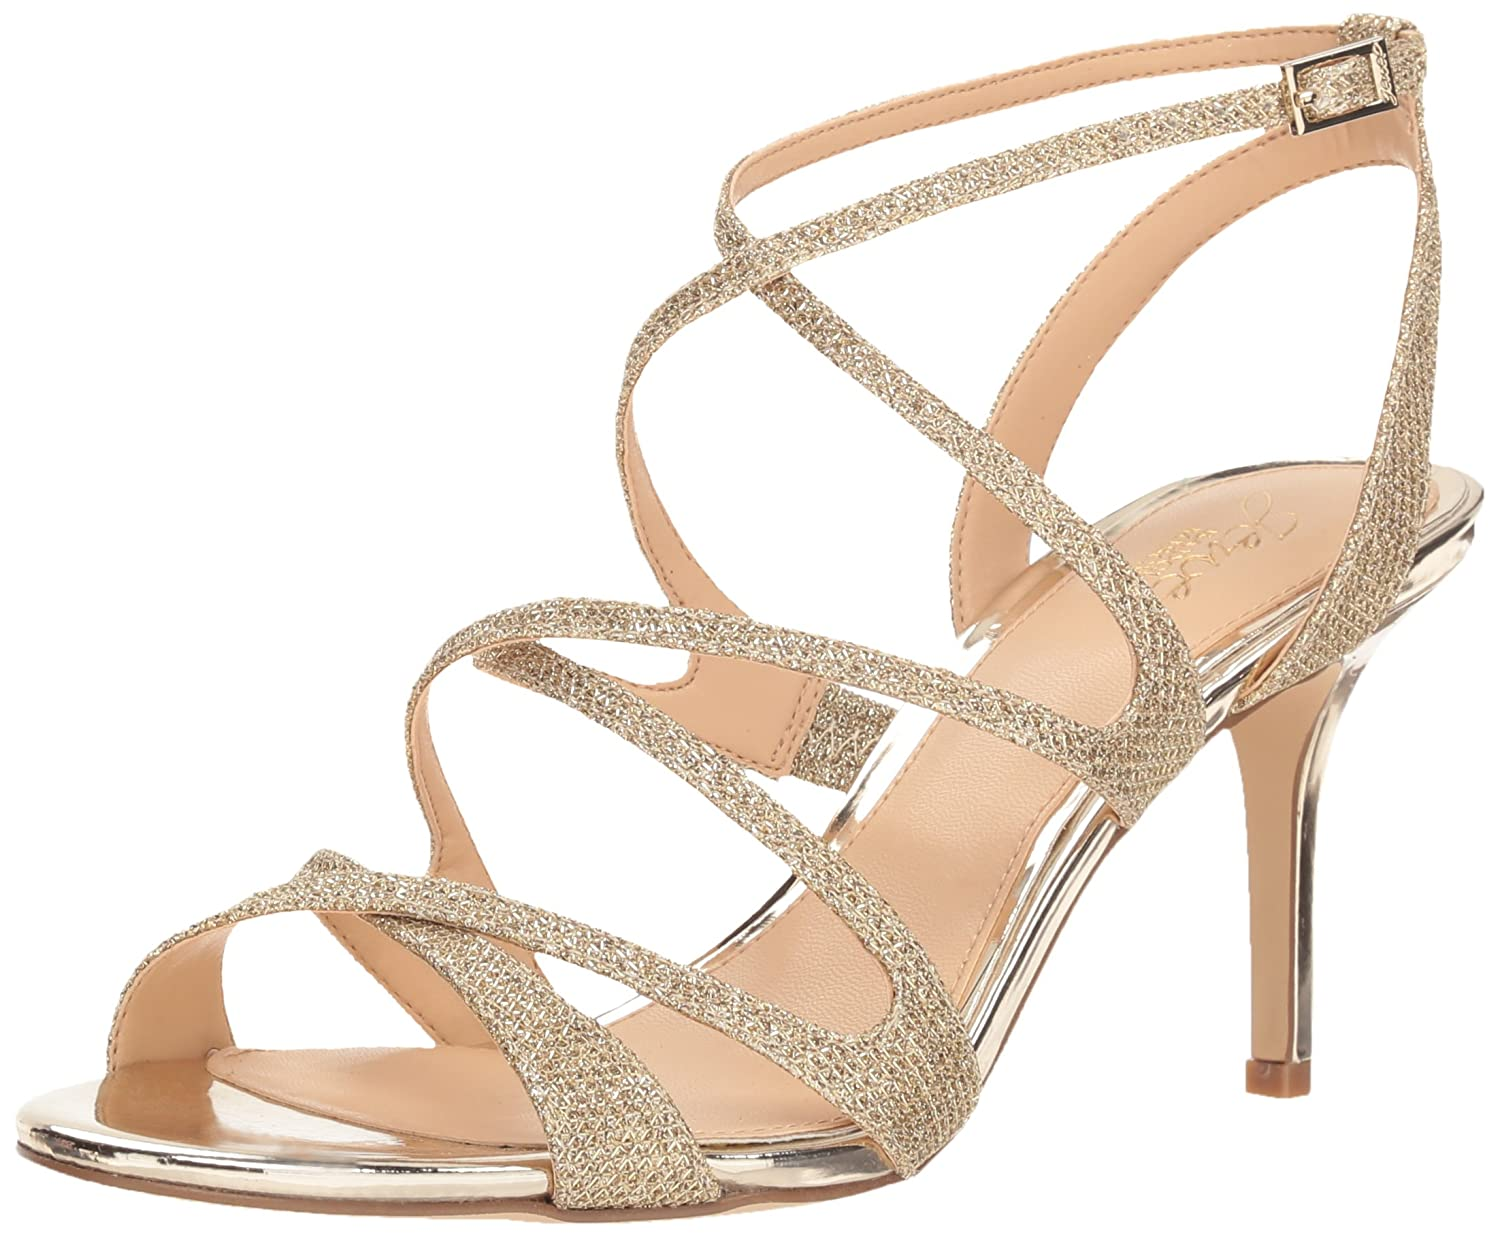 Badgley Mischka Jewel Women's Tasha Heeled Sandal Jewel Badgley Mischka JW2296